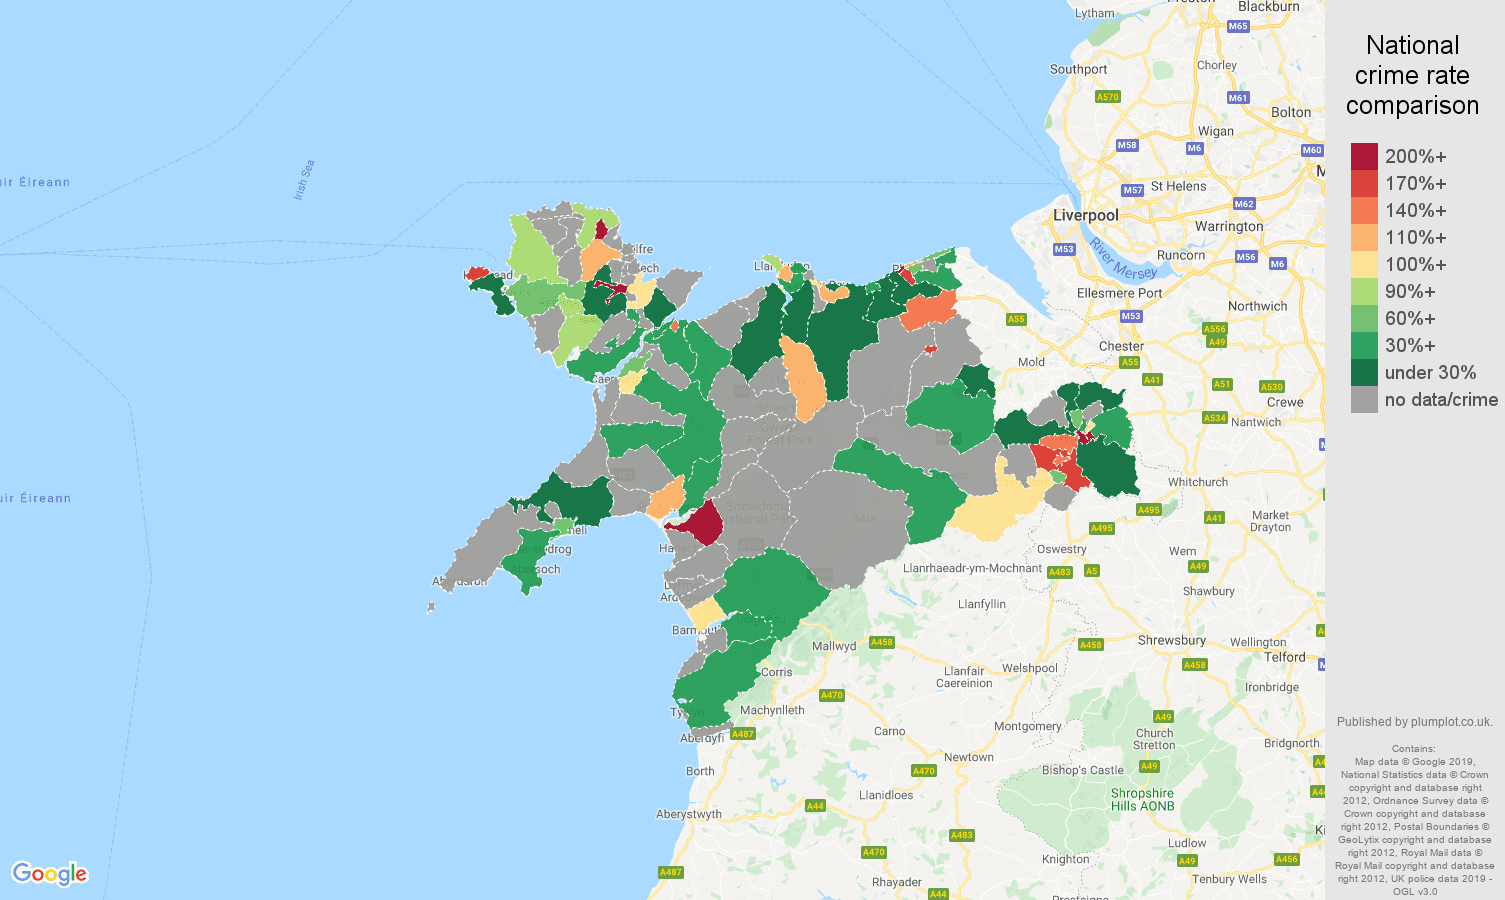 Llandudno possession of weapons crime rate comparison map